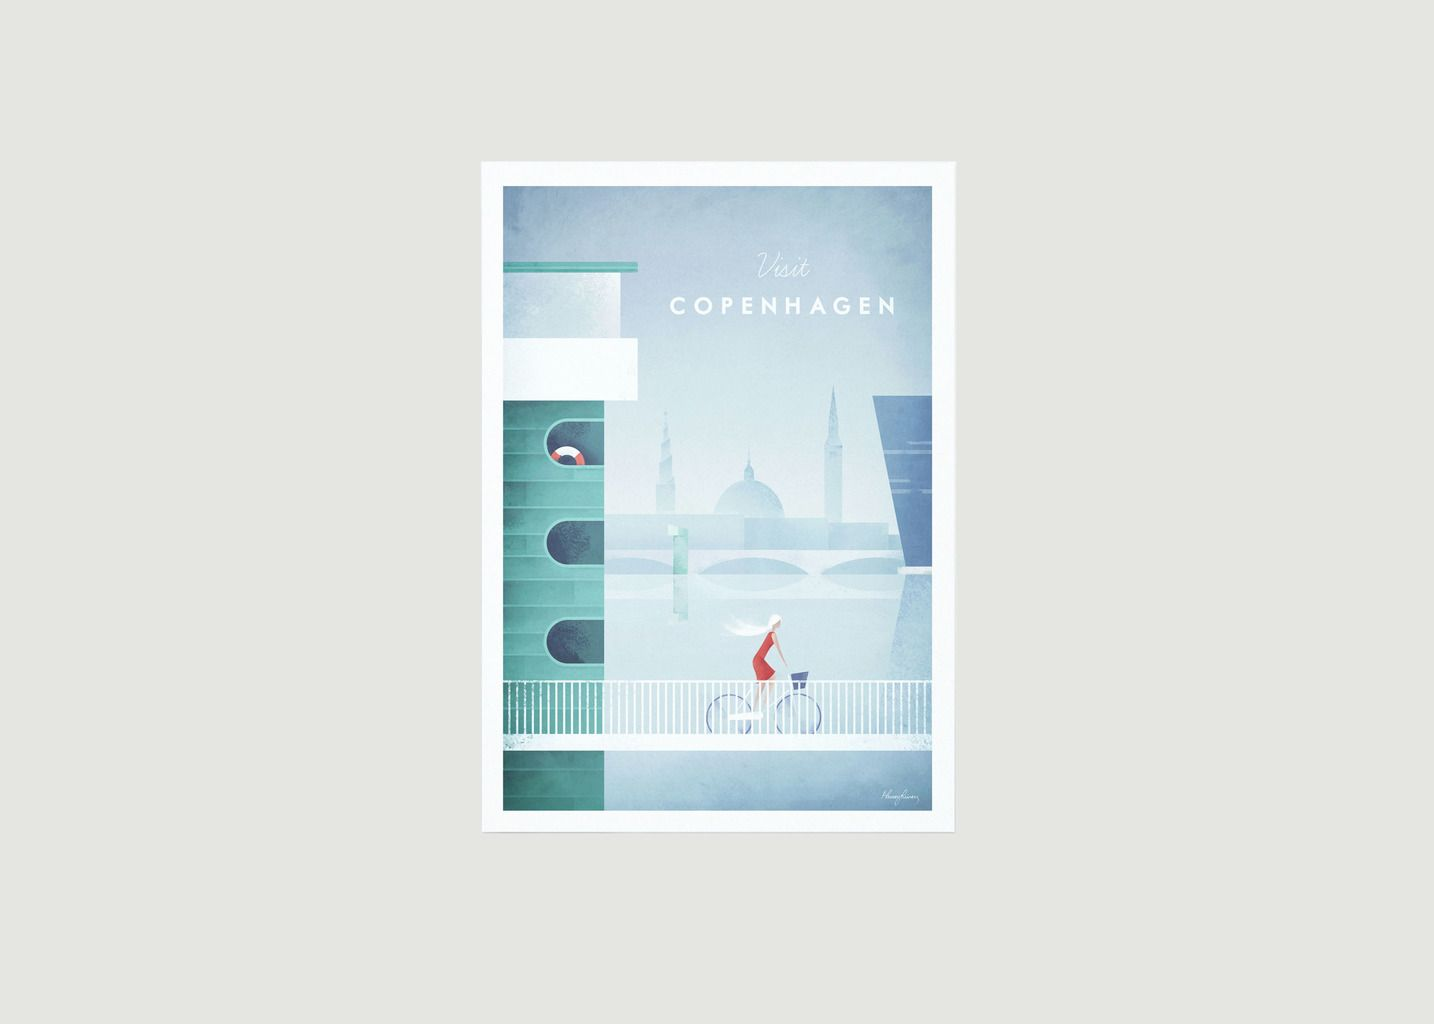 Travel Poster Copenhagen A2 - Travel Poster co